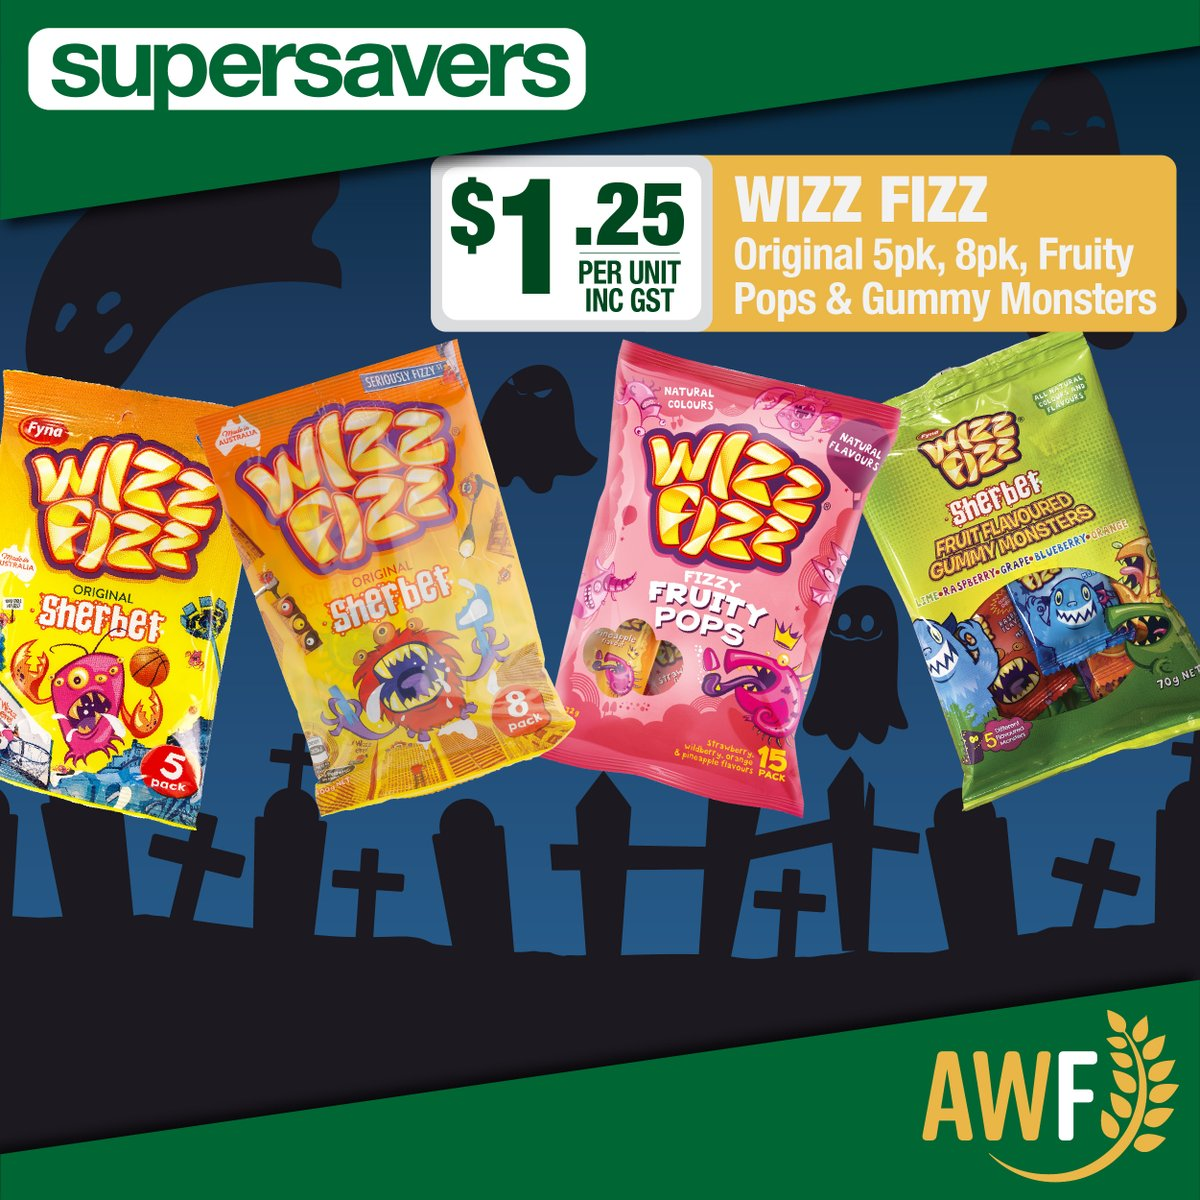 Grab these Wizz Fizz bags in this months Spooky Savers!  View it online: https://t.co/4JQiBKD4hX ------------- 📞 Call us: (08) 9041 1424 📧 Email: sales@allwaysfoods.com.au #supersavers #AWF #AllwaysFoods #warehouse #merredin #wizzfizz #sherbet https://t.co/OQnoyOTM5P https://t.co/d7dwd5Ttqk